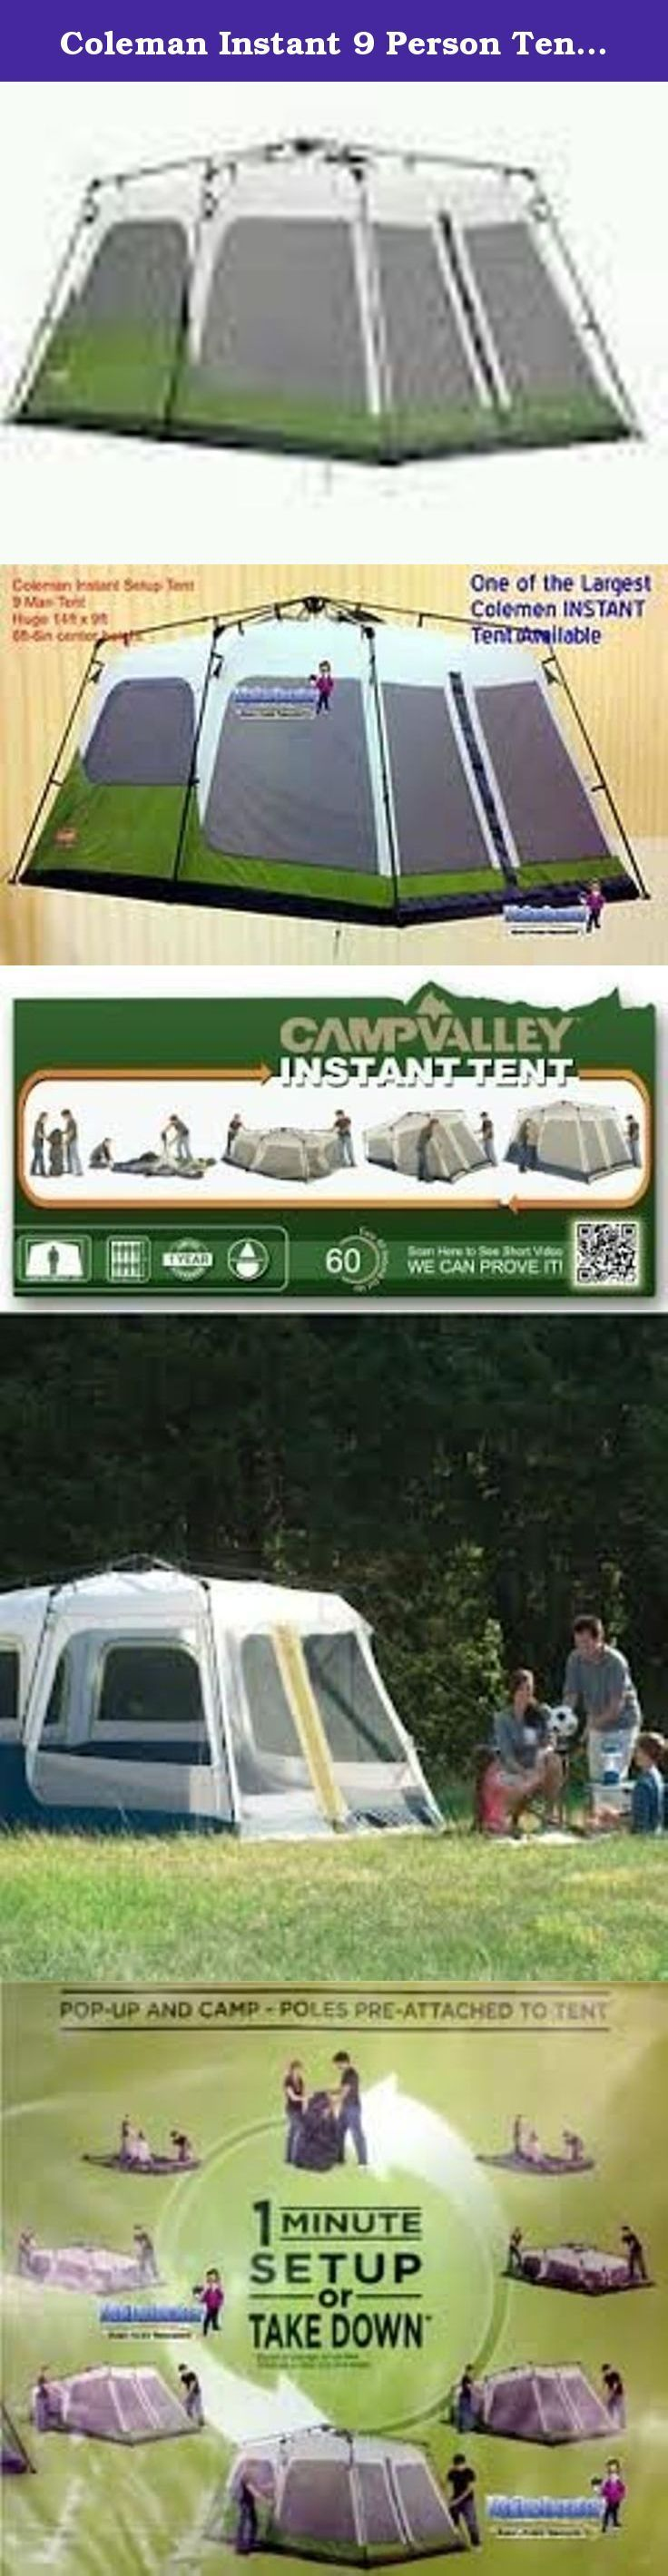 Coleman Instant 9 Person Tent (14ft X 9ft). Set up camp with the Coleman 9-person instant tent. It offers ample space to accommodate up to 9 people at a time. You can place 2 queen-size air beds in this tent and still have enough space to comfortably stan